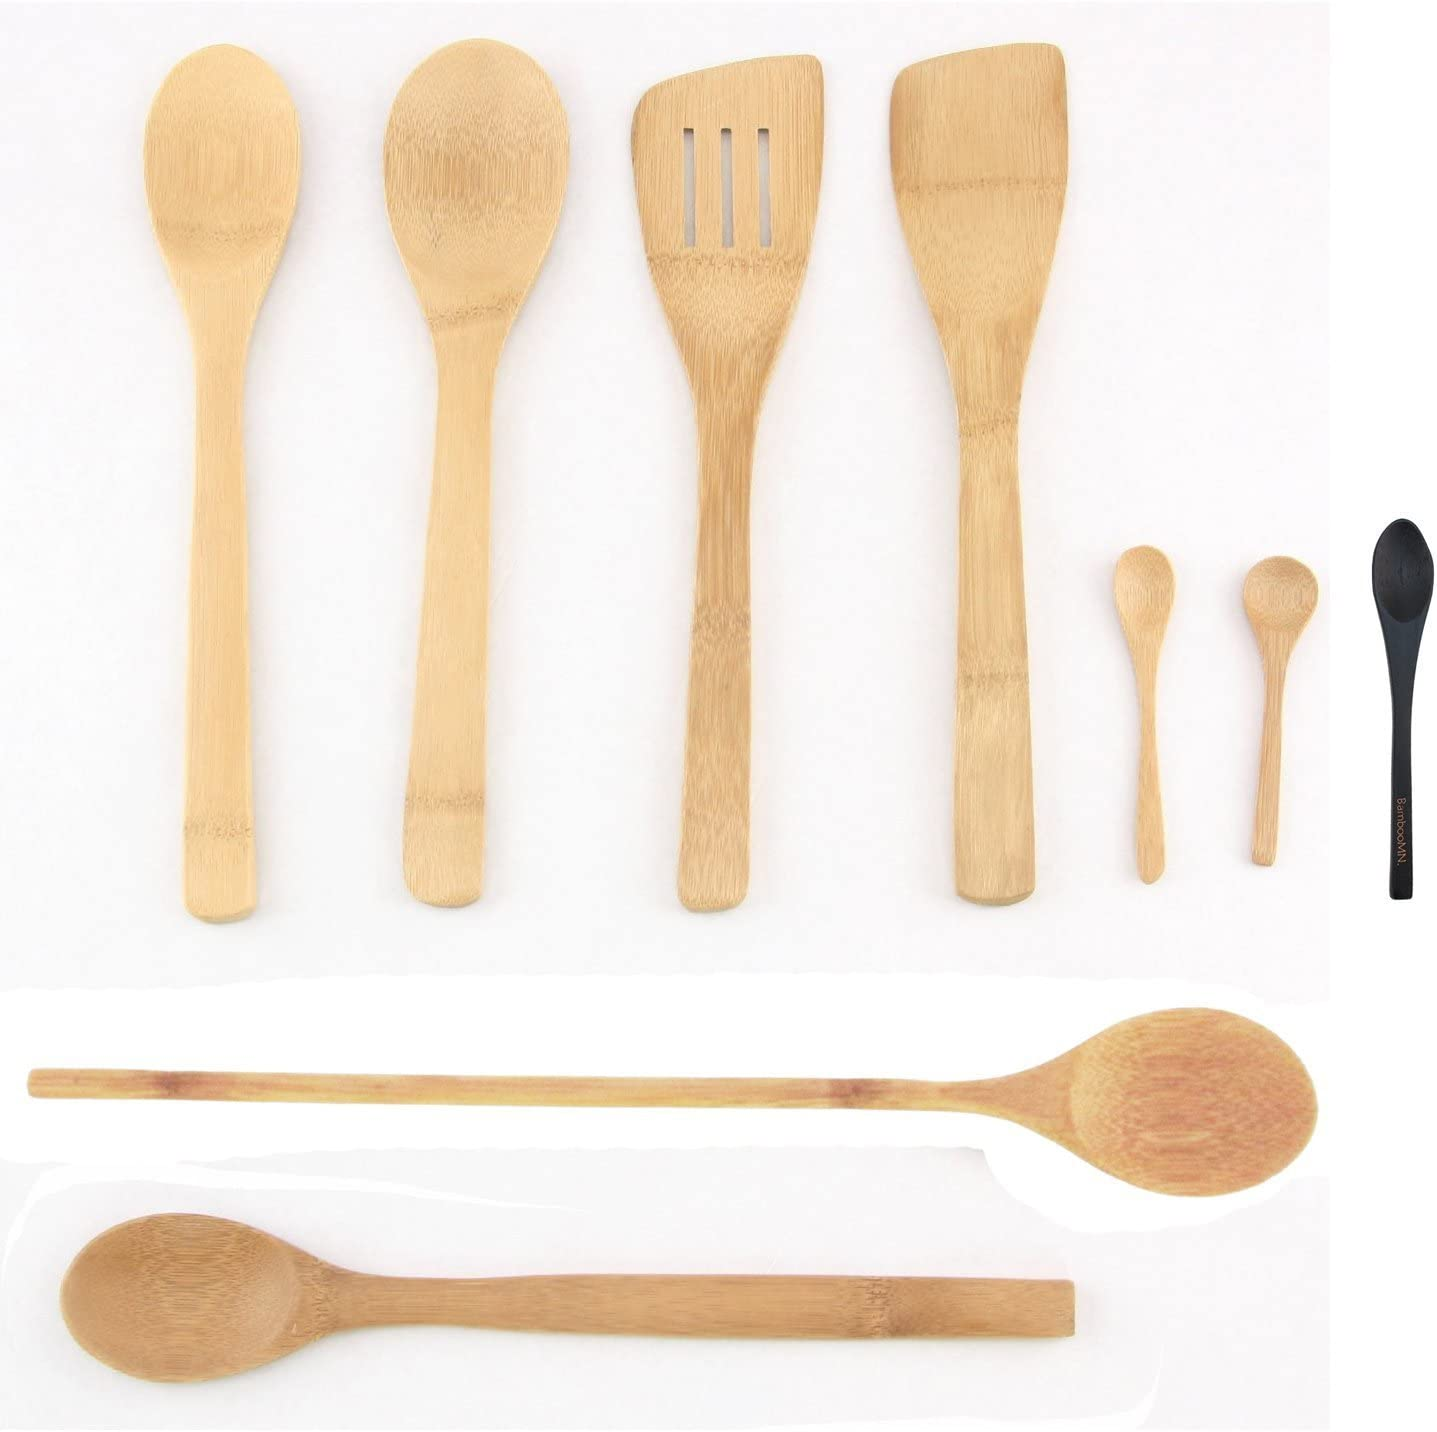 3x Wooden Spoon Set for Cooking